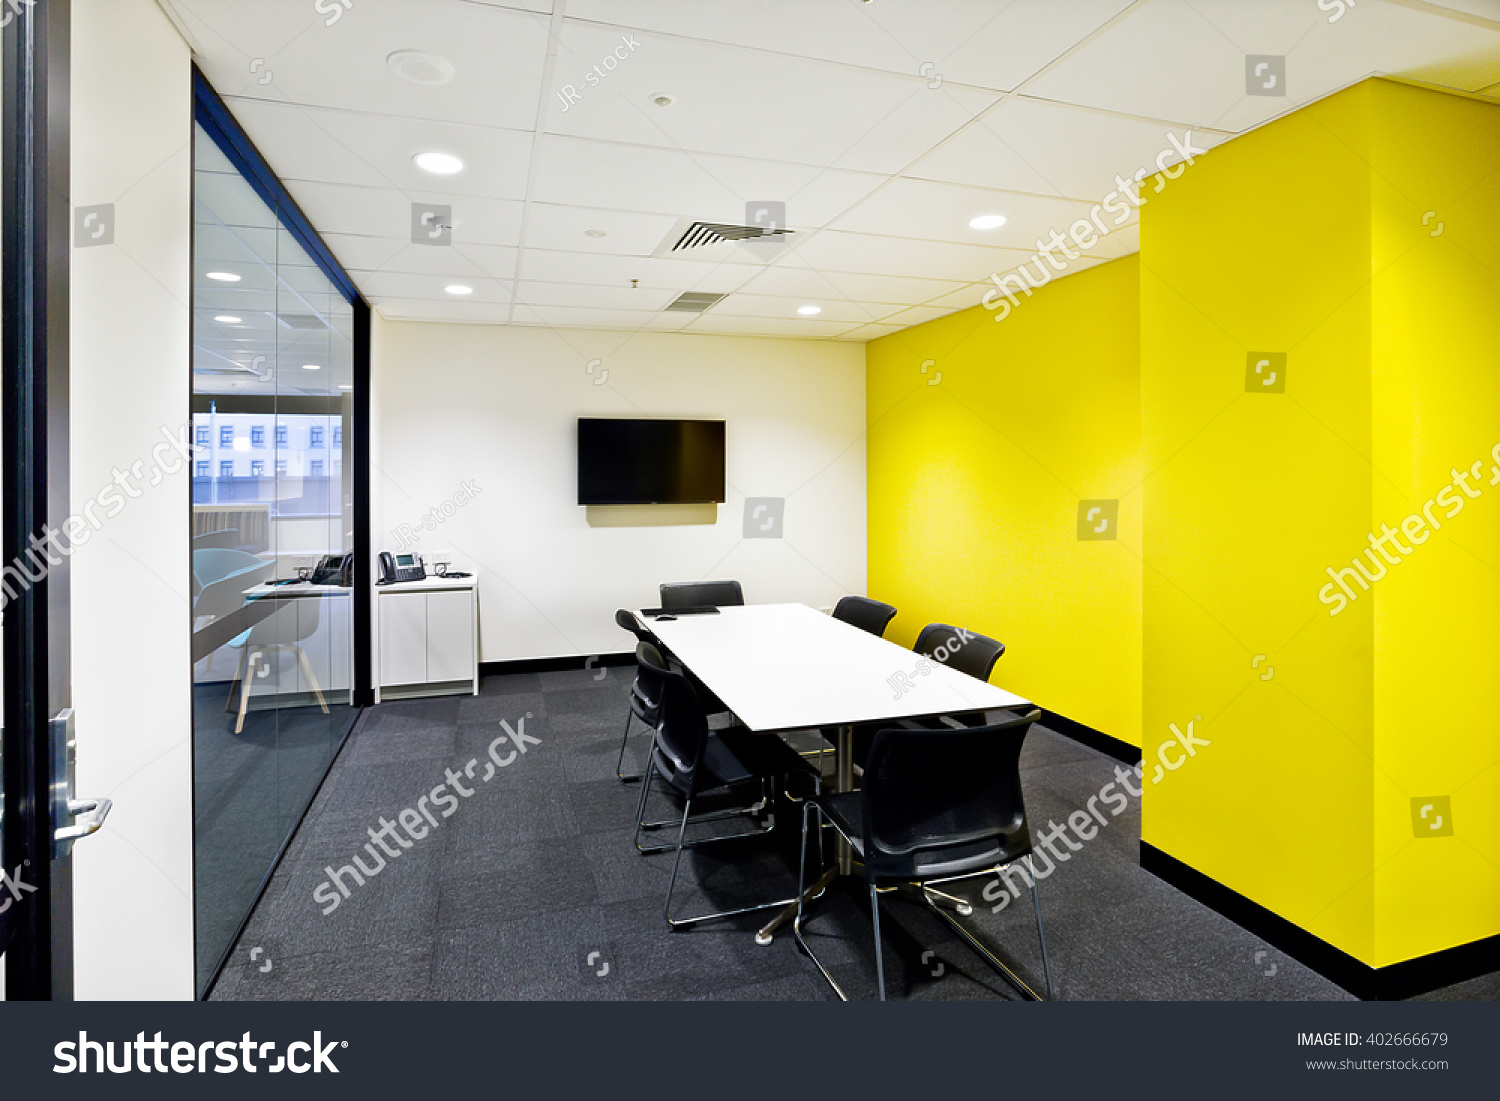 small meeting room yellow walls tv stock photo edit now 402666679